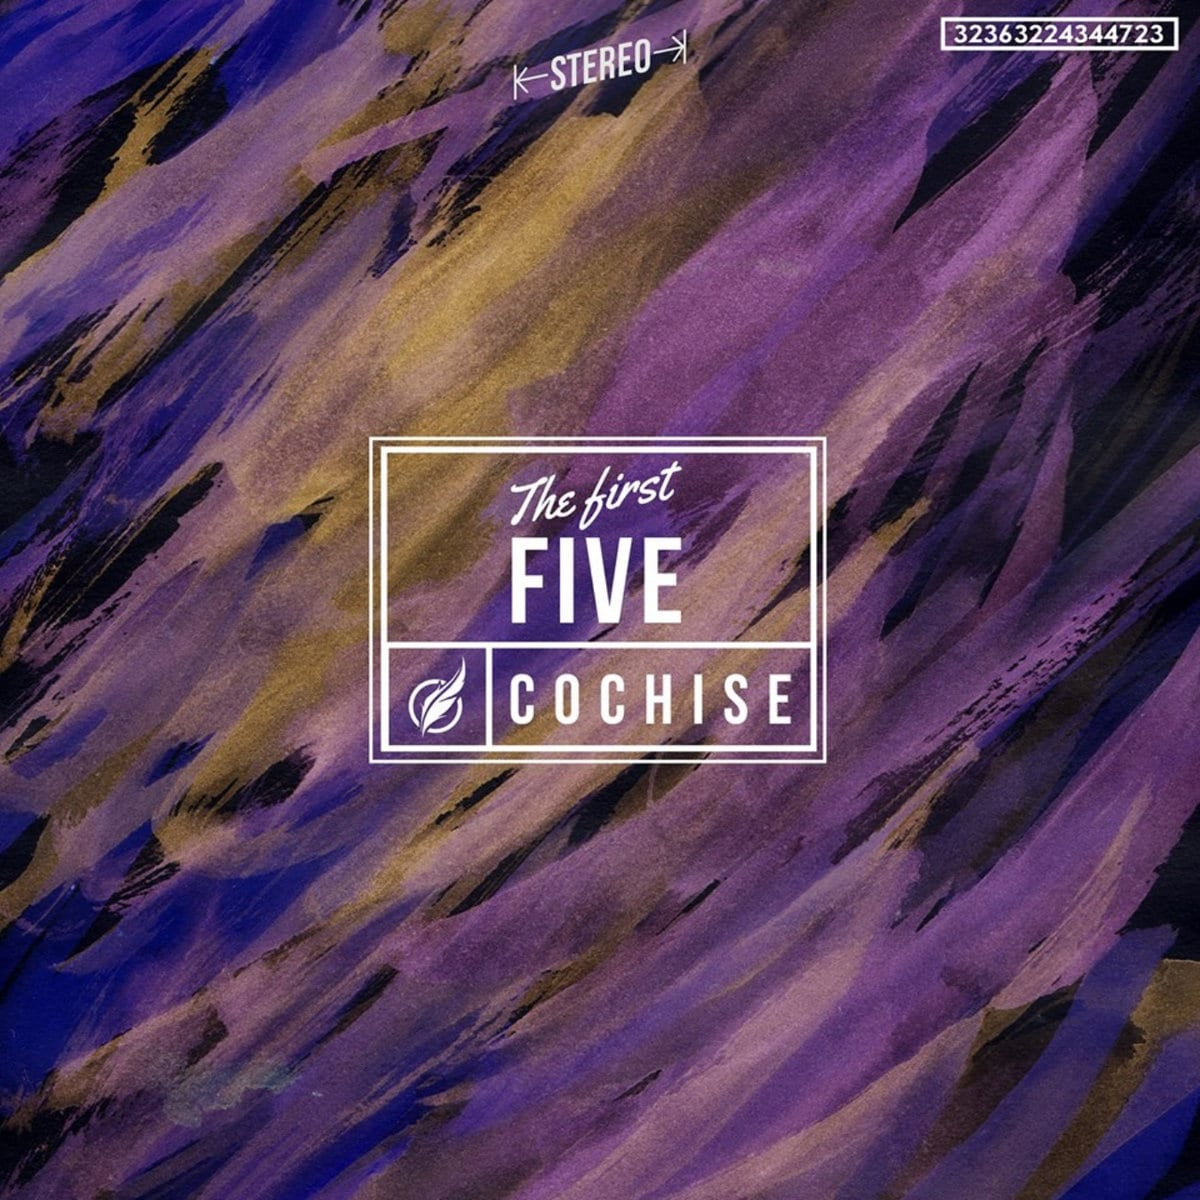 Cover album pochette cochise the first five